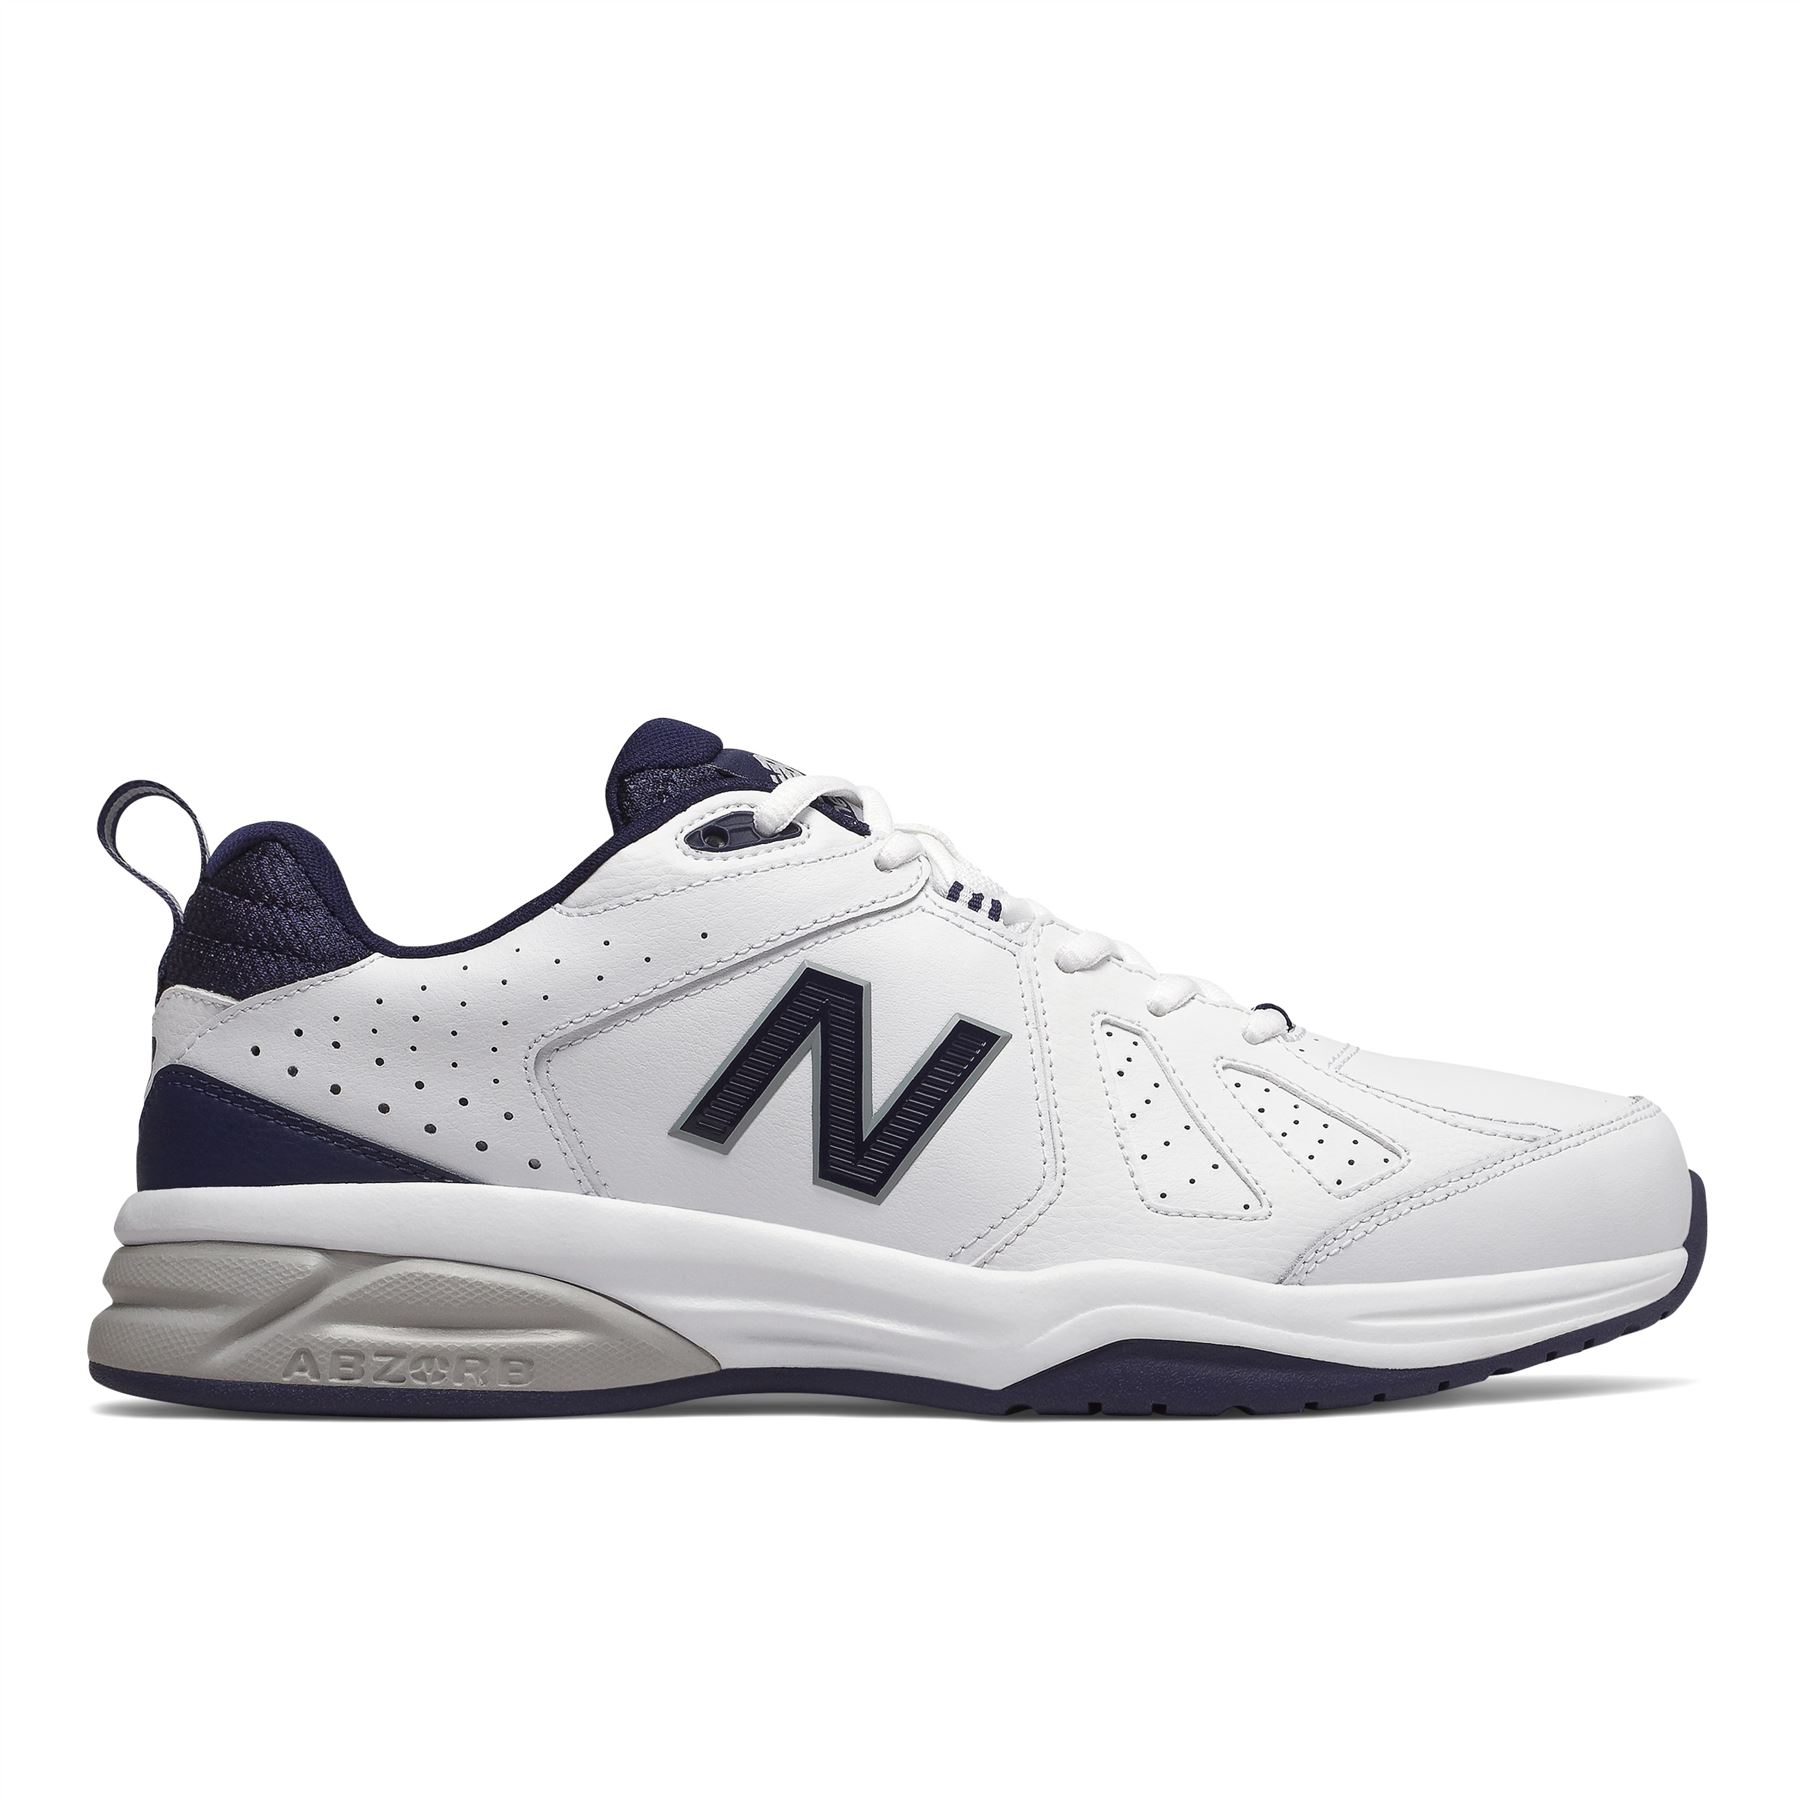 New Balance Mens Extra Wide Fit (4E) Leather Sneakers (624) in ...